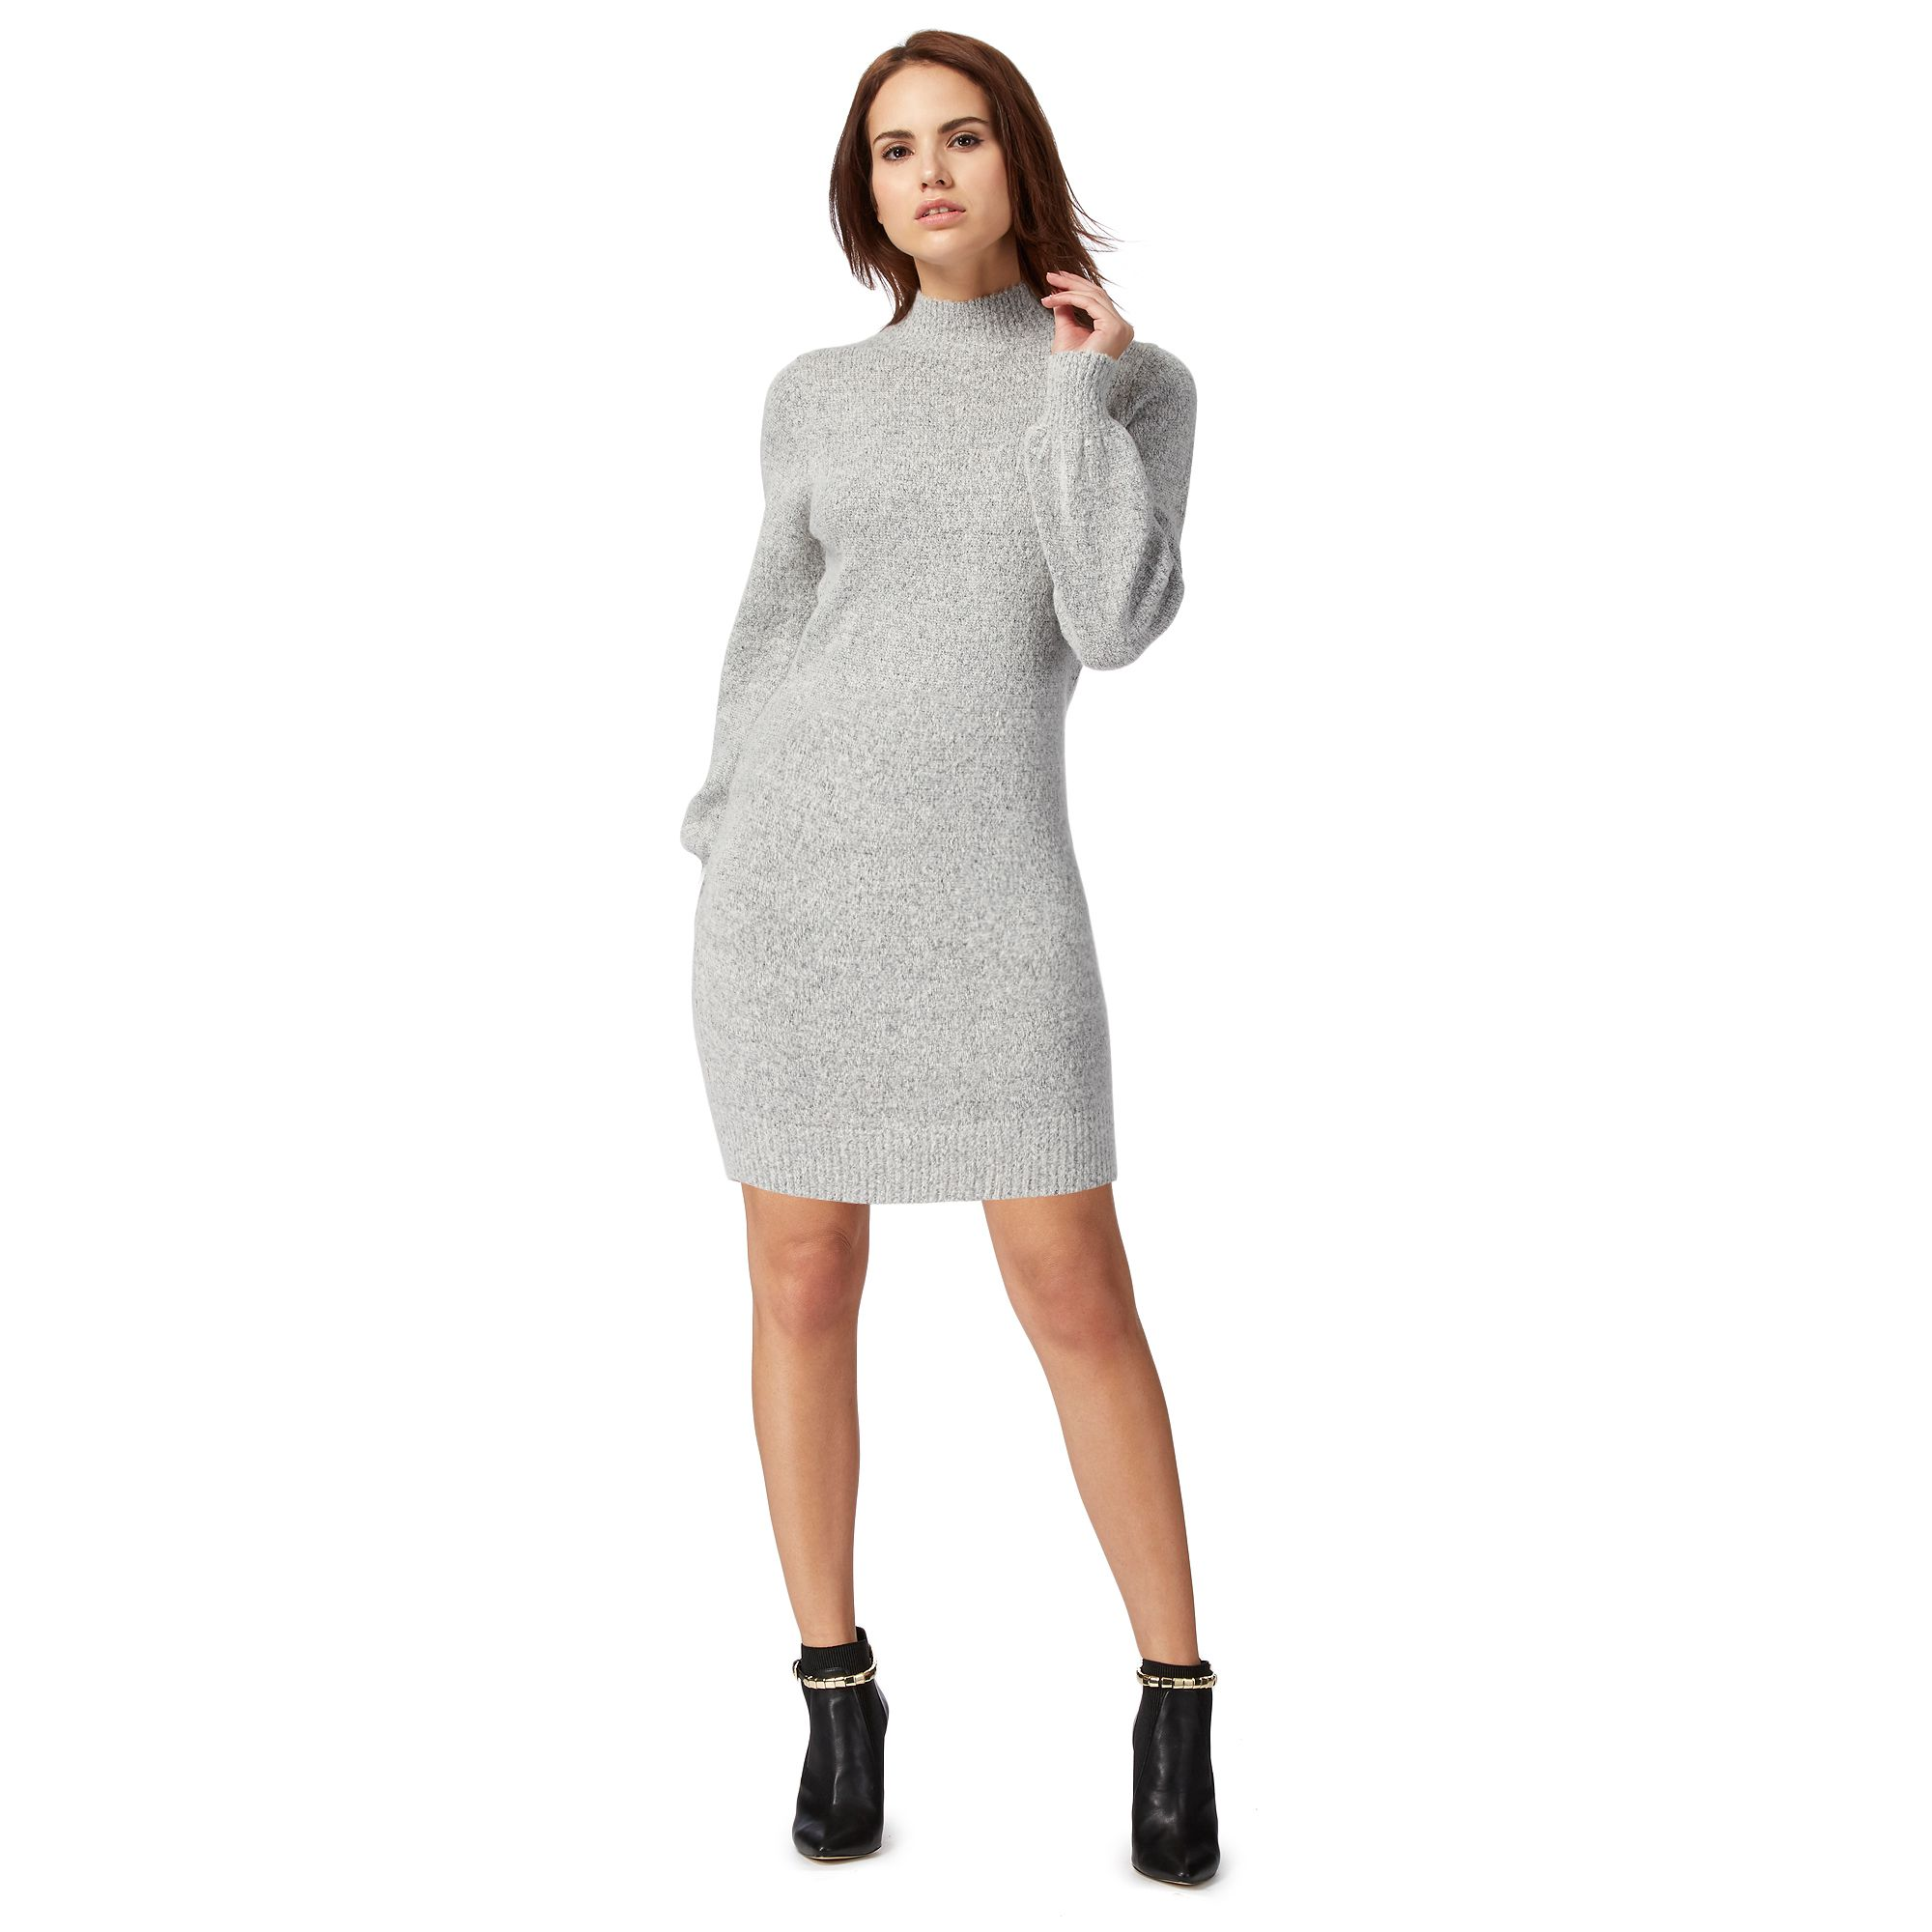 Red Herring Womens Grey Knitted Dress From Debenhams | eBay